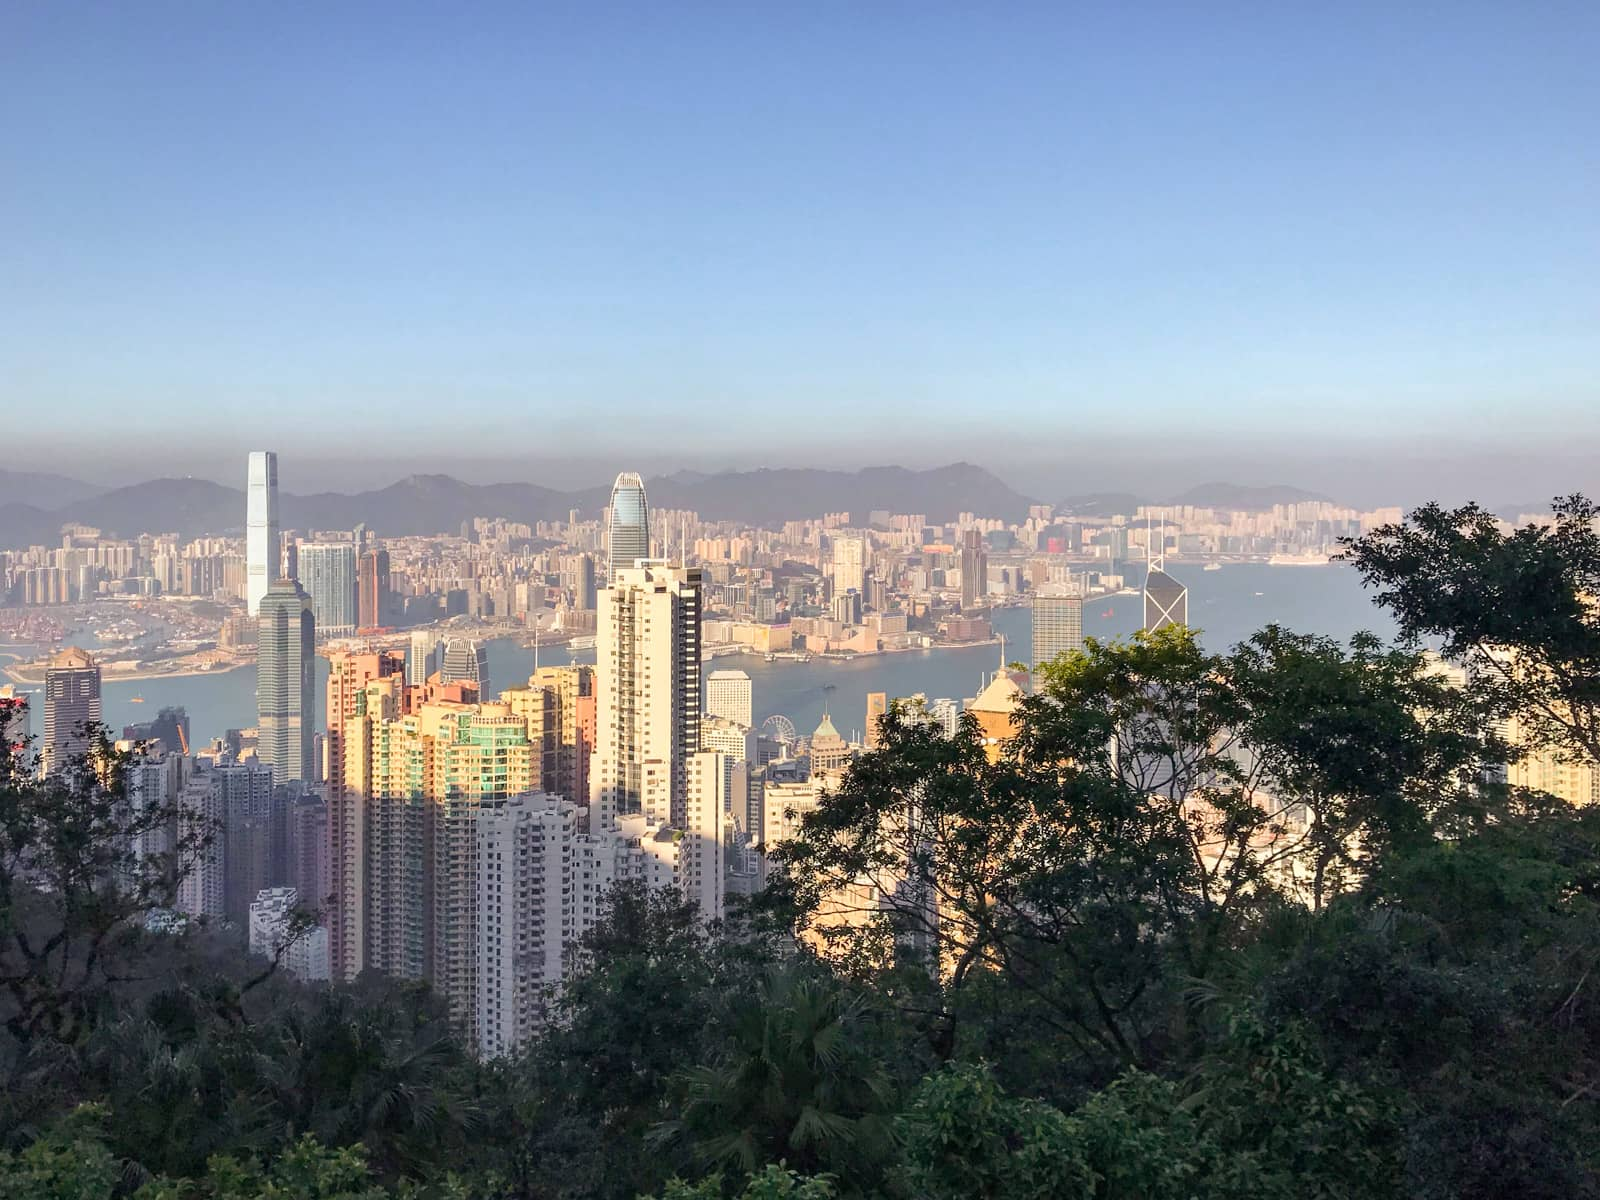 A view of the city of Hong Kong from a high vantage point, with some shadowed trees in the lower foreground.